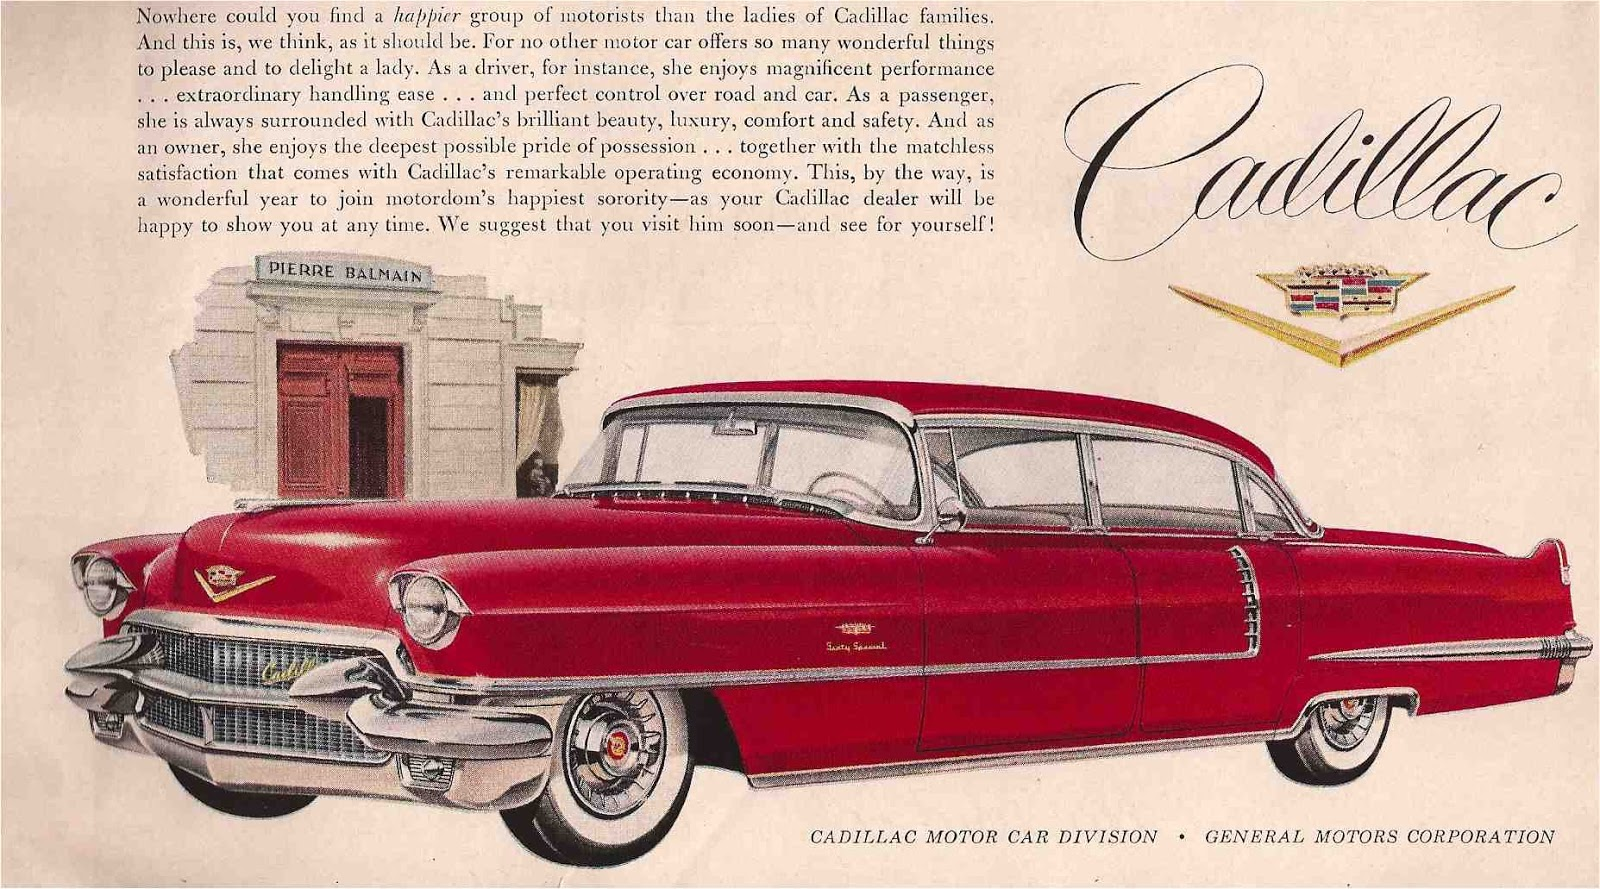 Vintage Advertising: OF THE CADILLAC